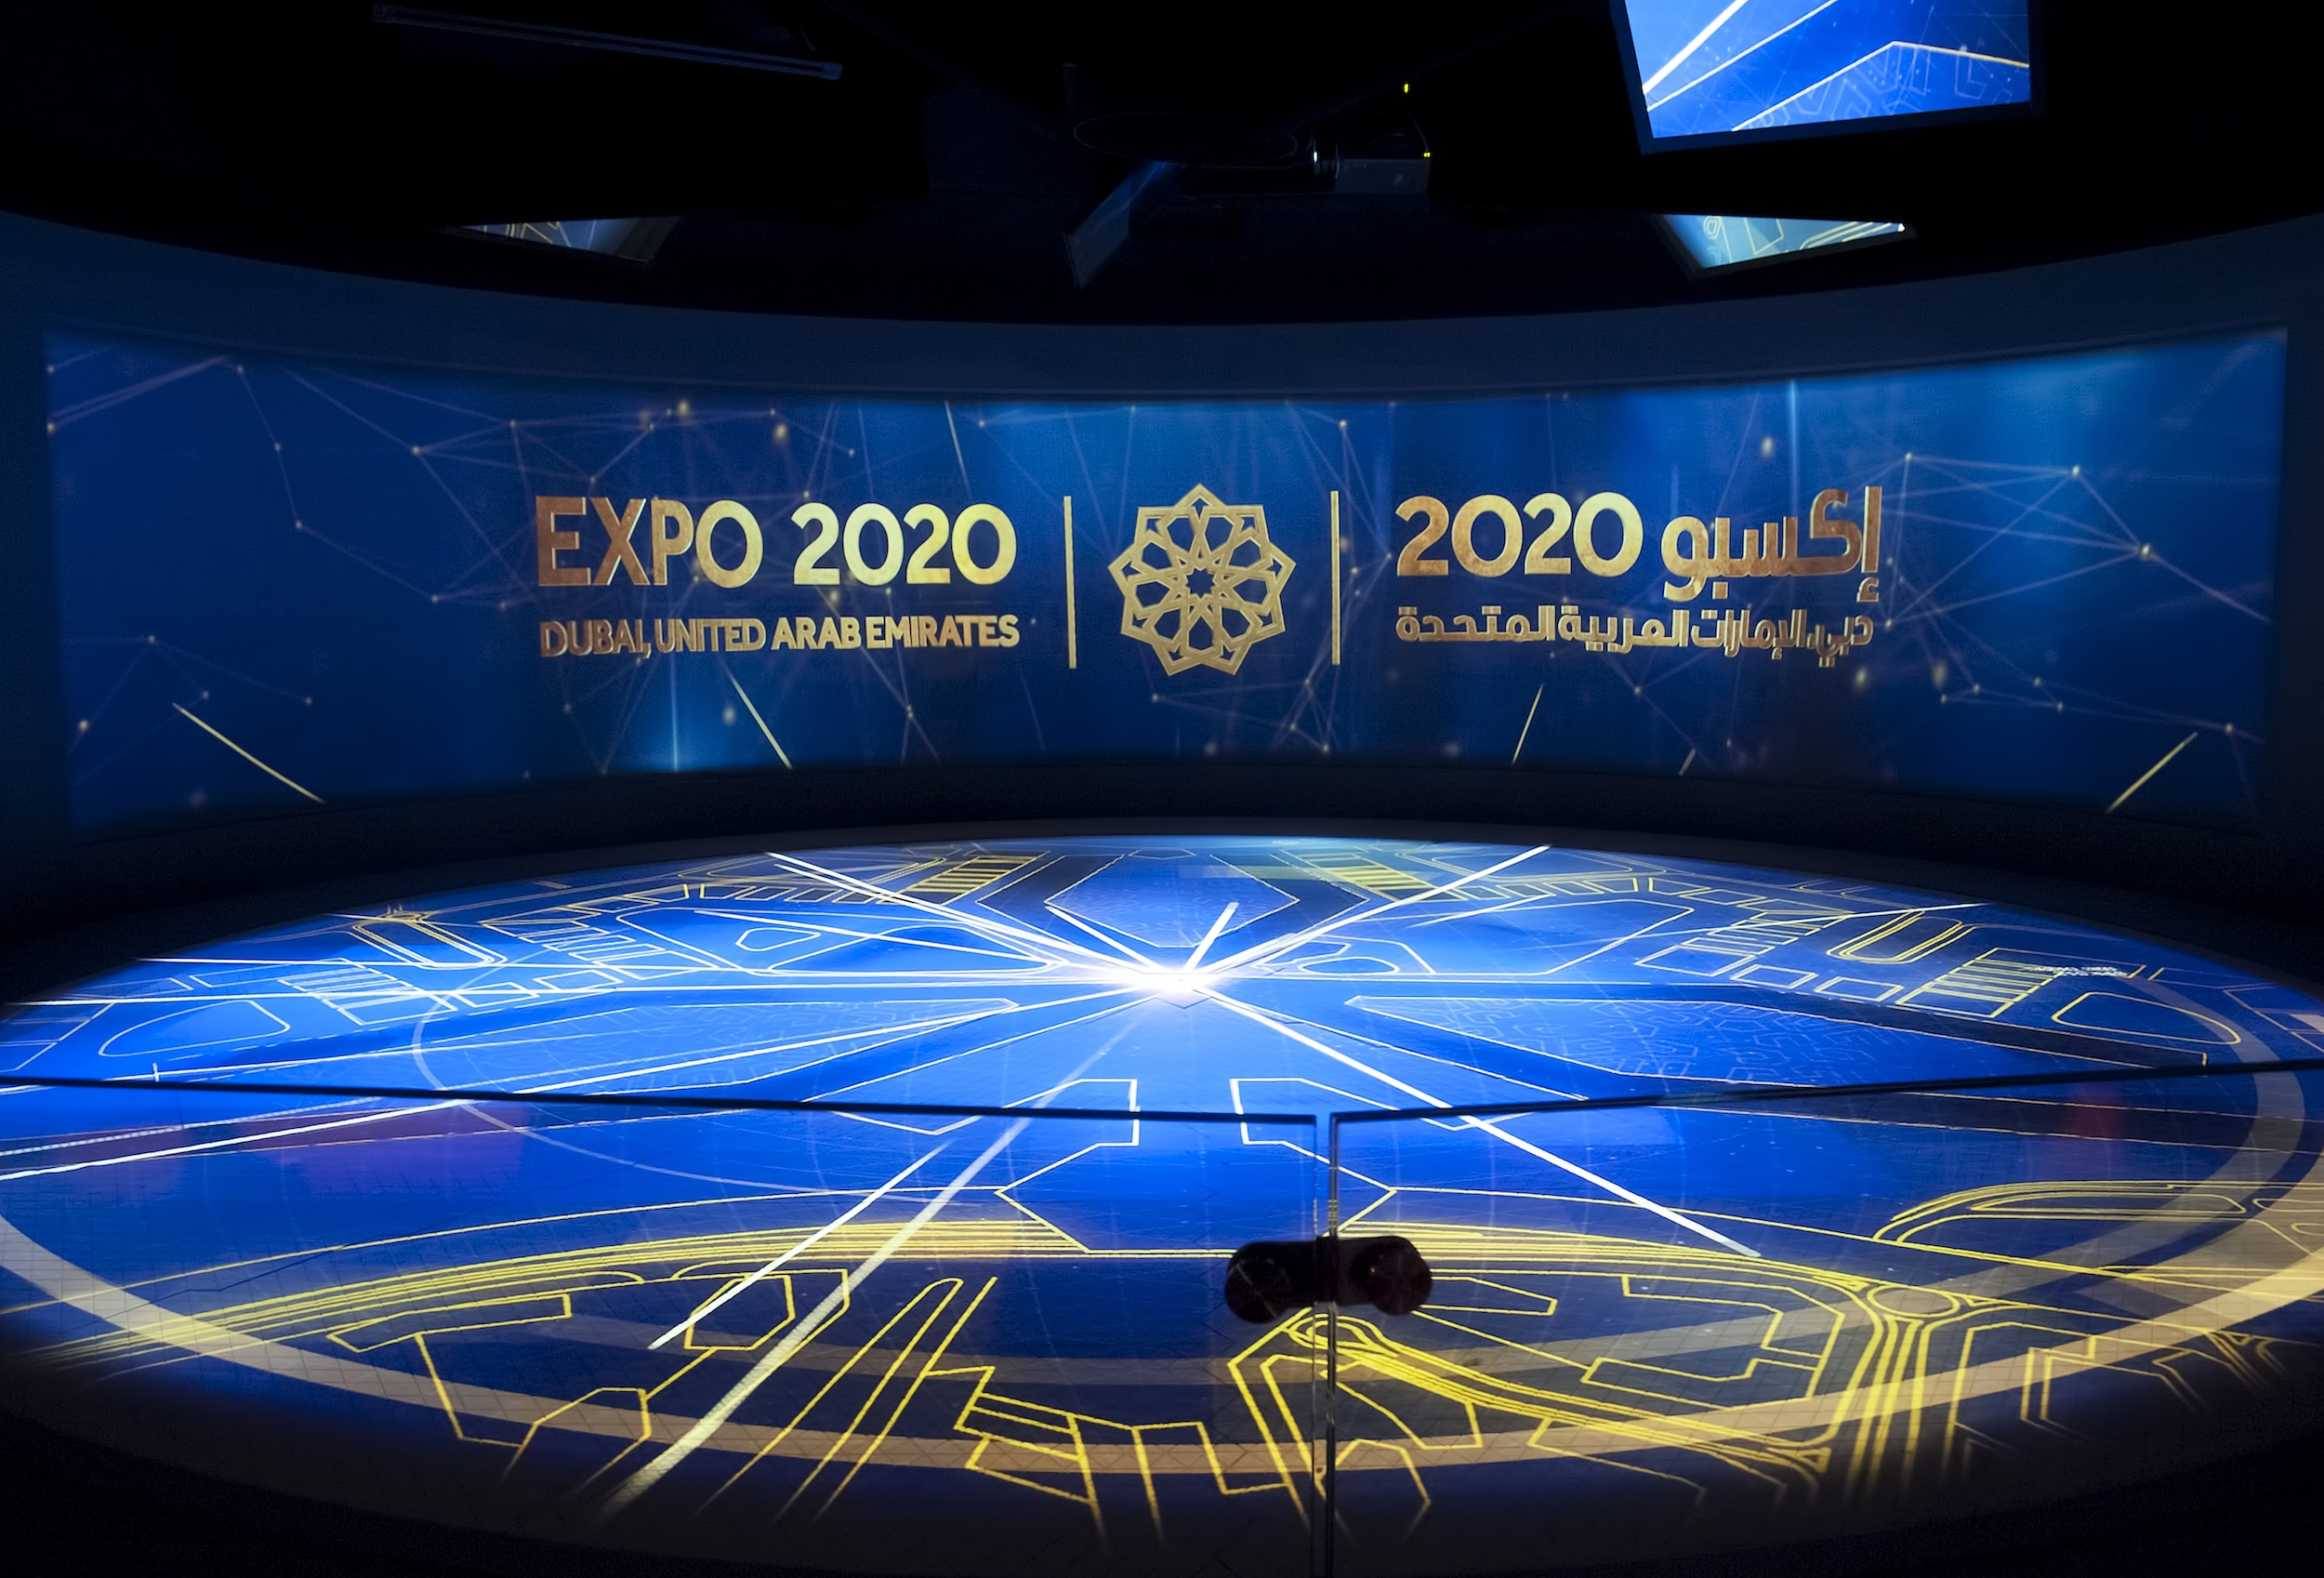 Dubai based Action Impact creates Expo 2020 Dubai experience at the ongoing Expo 2015 Milano